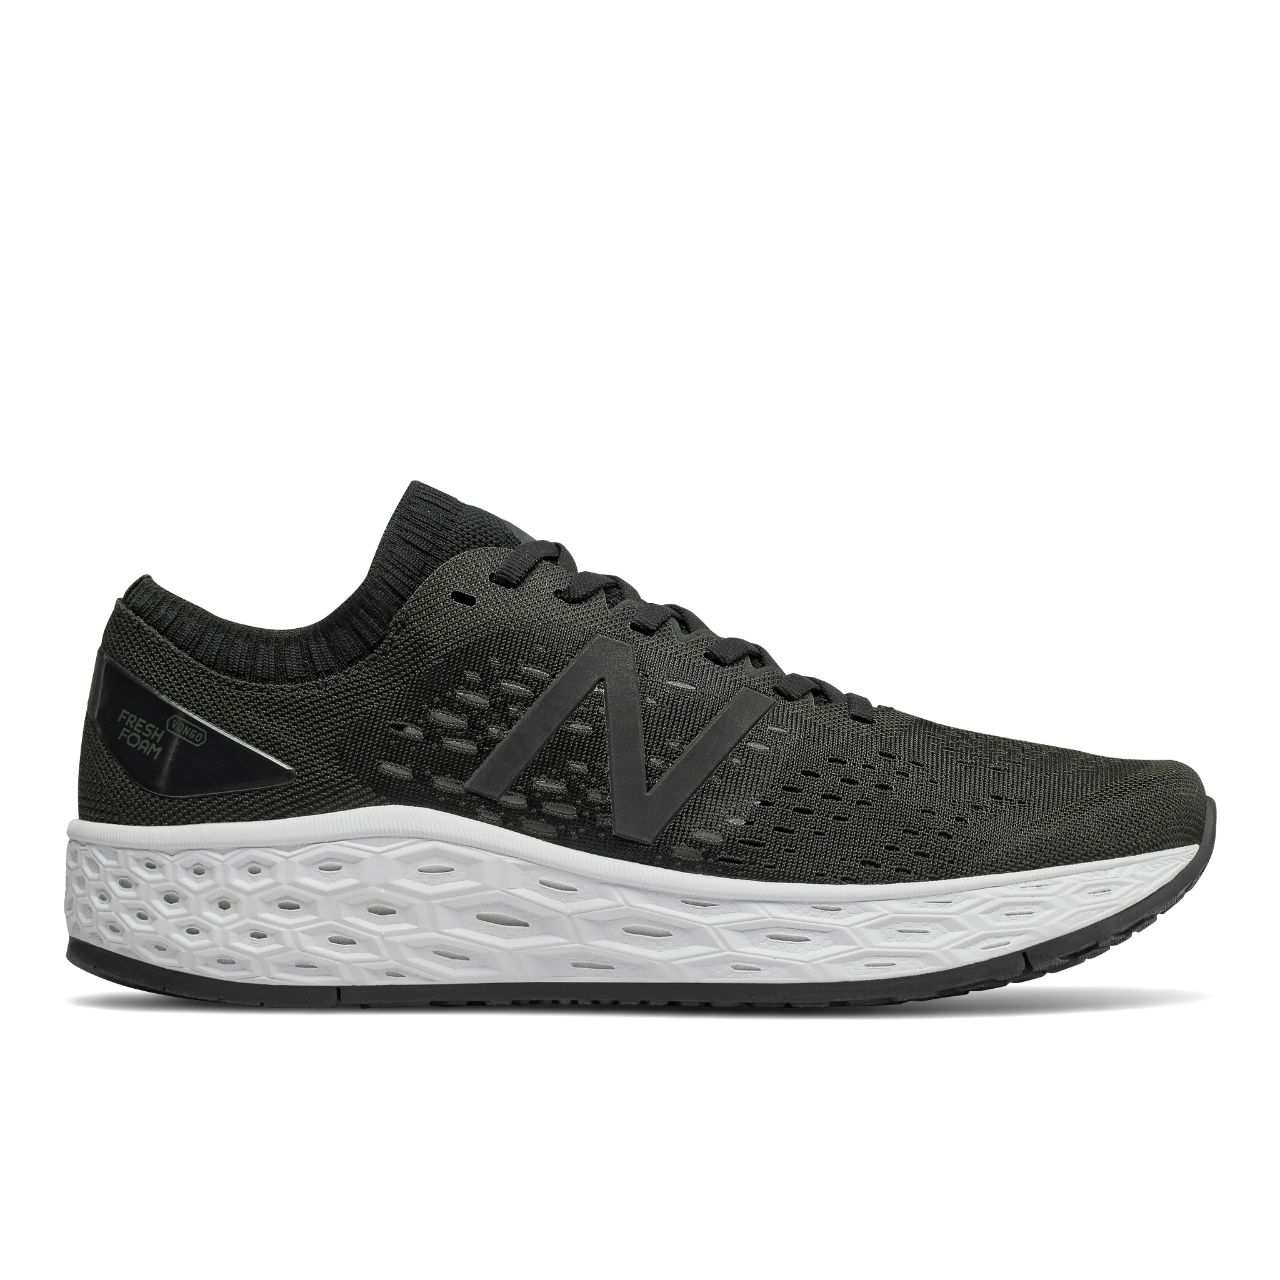 New Balance Fresh Foam Vongo v4 in Schwarz